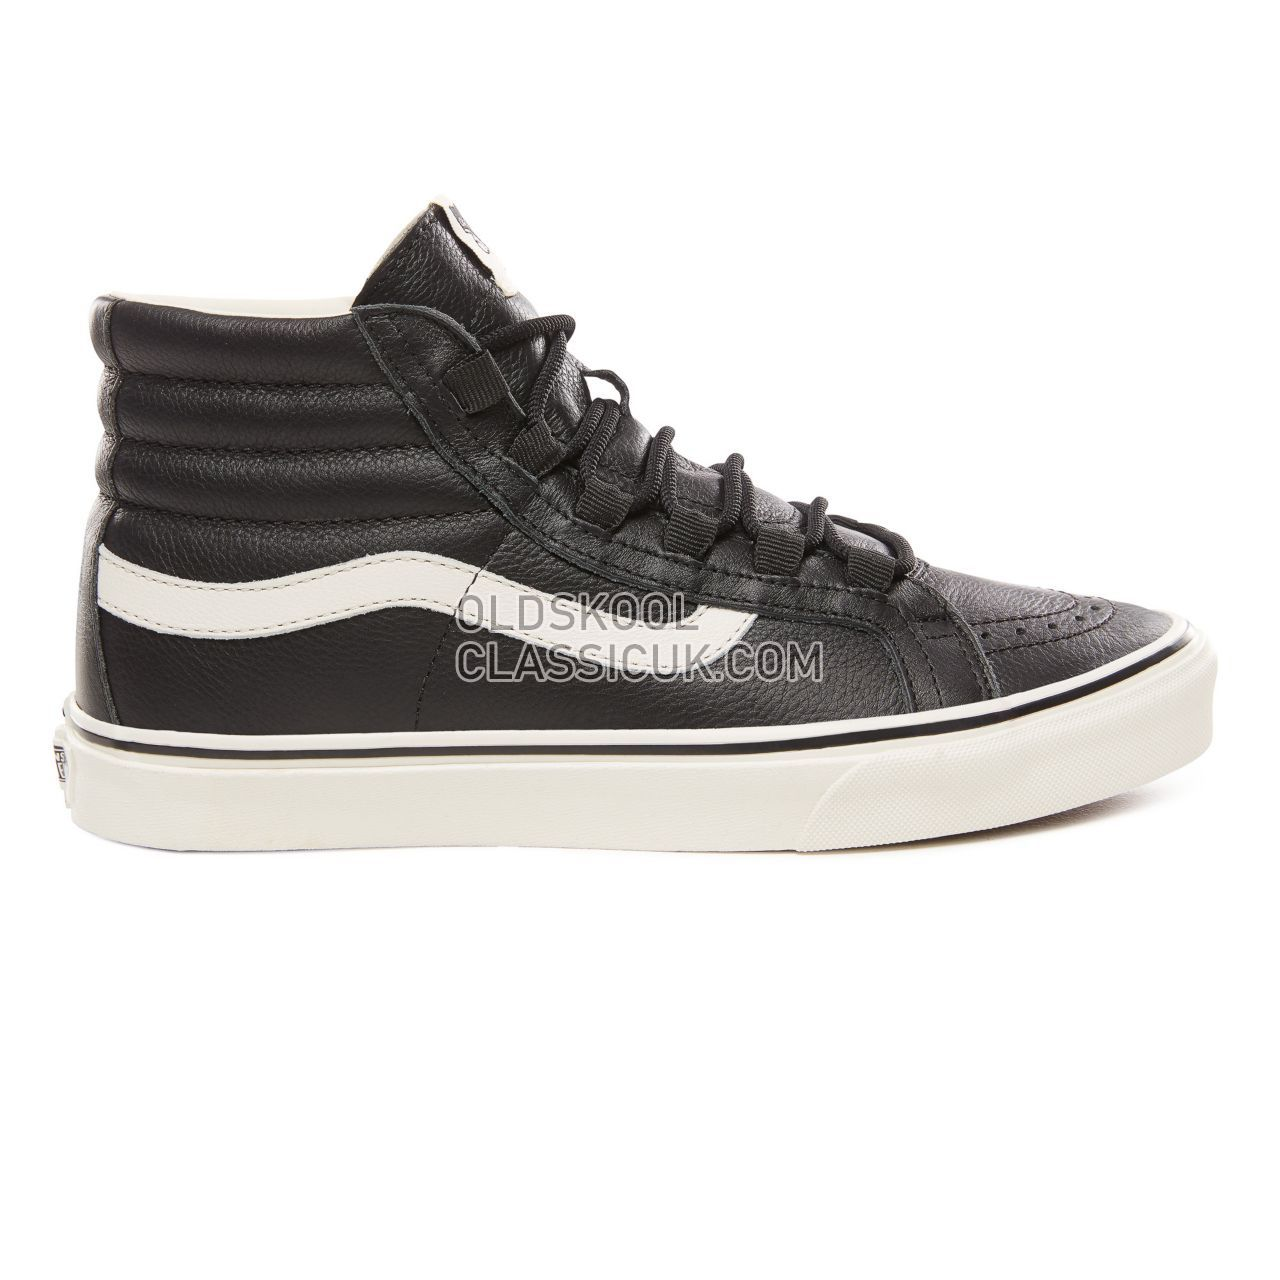 dbaf4e8d6b940 Vans Leather Sk8-Hi Reissue Ghillie Sneakers Mens (Leather)  Black/Marshmallow VN0A3ZCH68X Shoes - £50